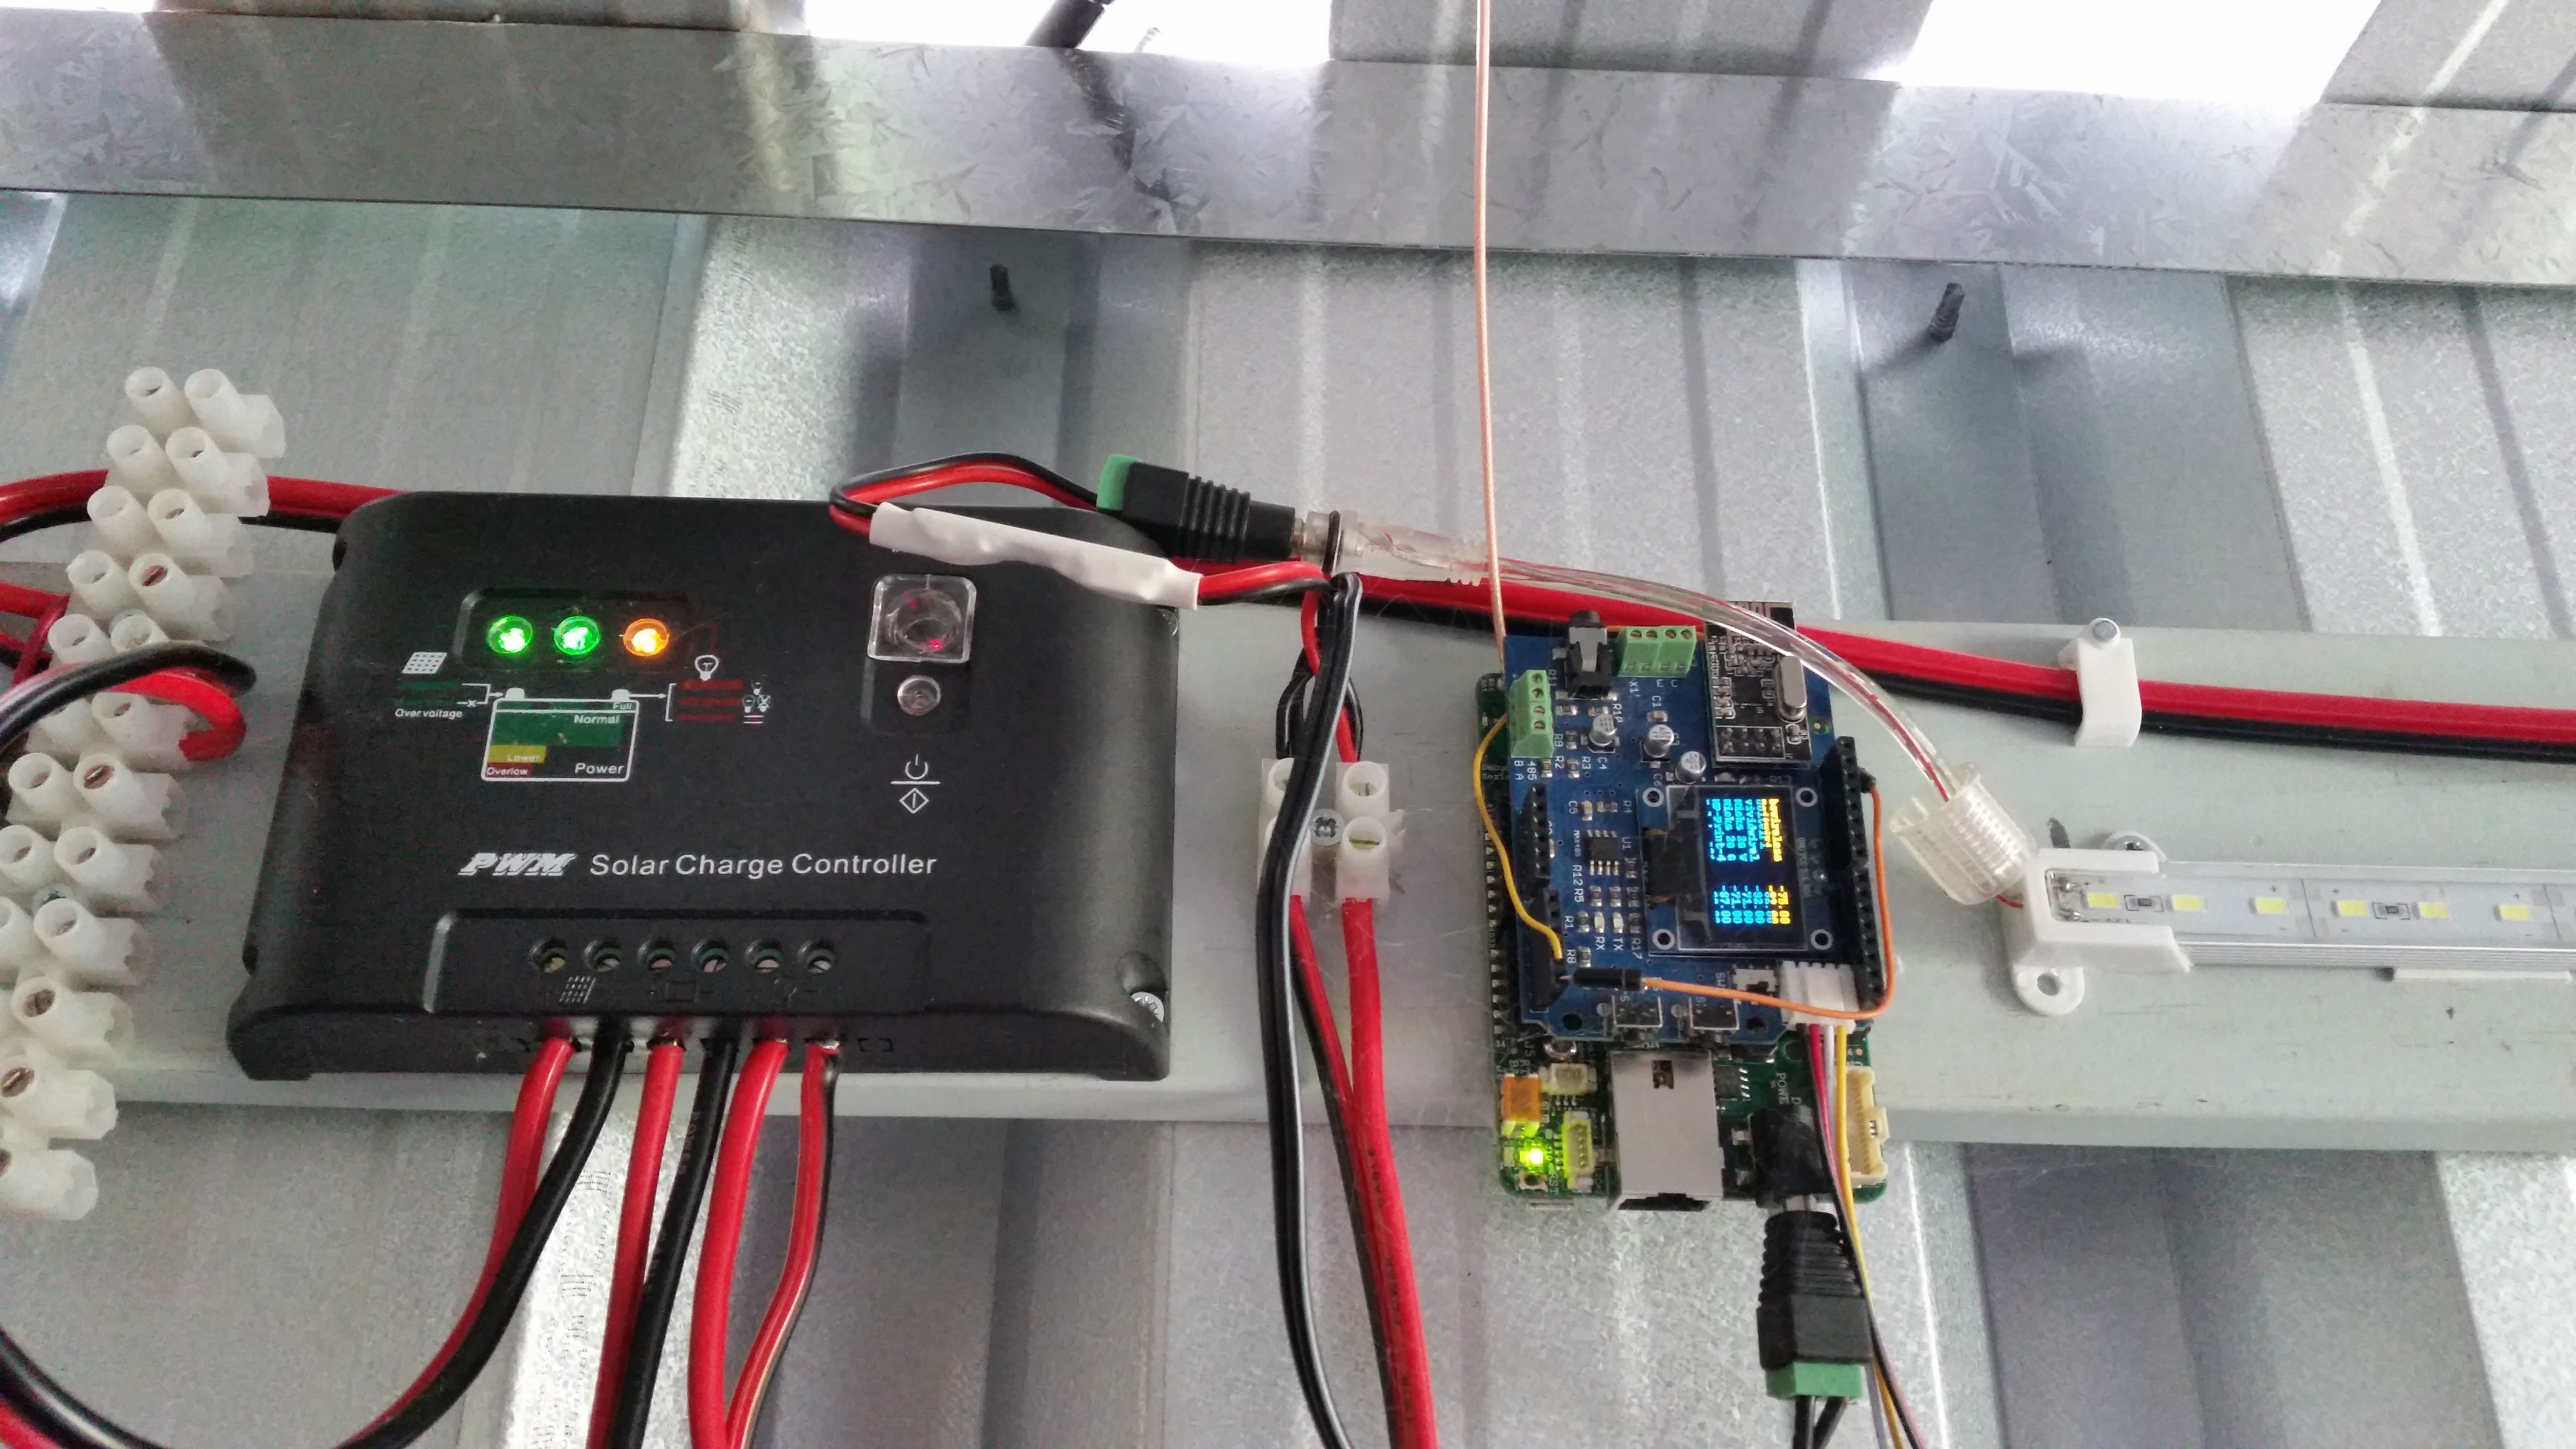 UDOO installed in the shed, Solar charge controller to be replaced